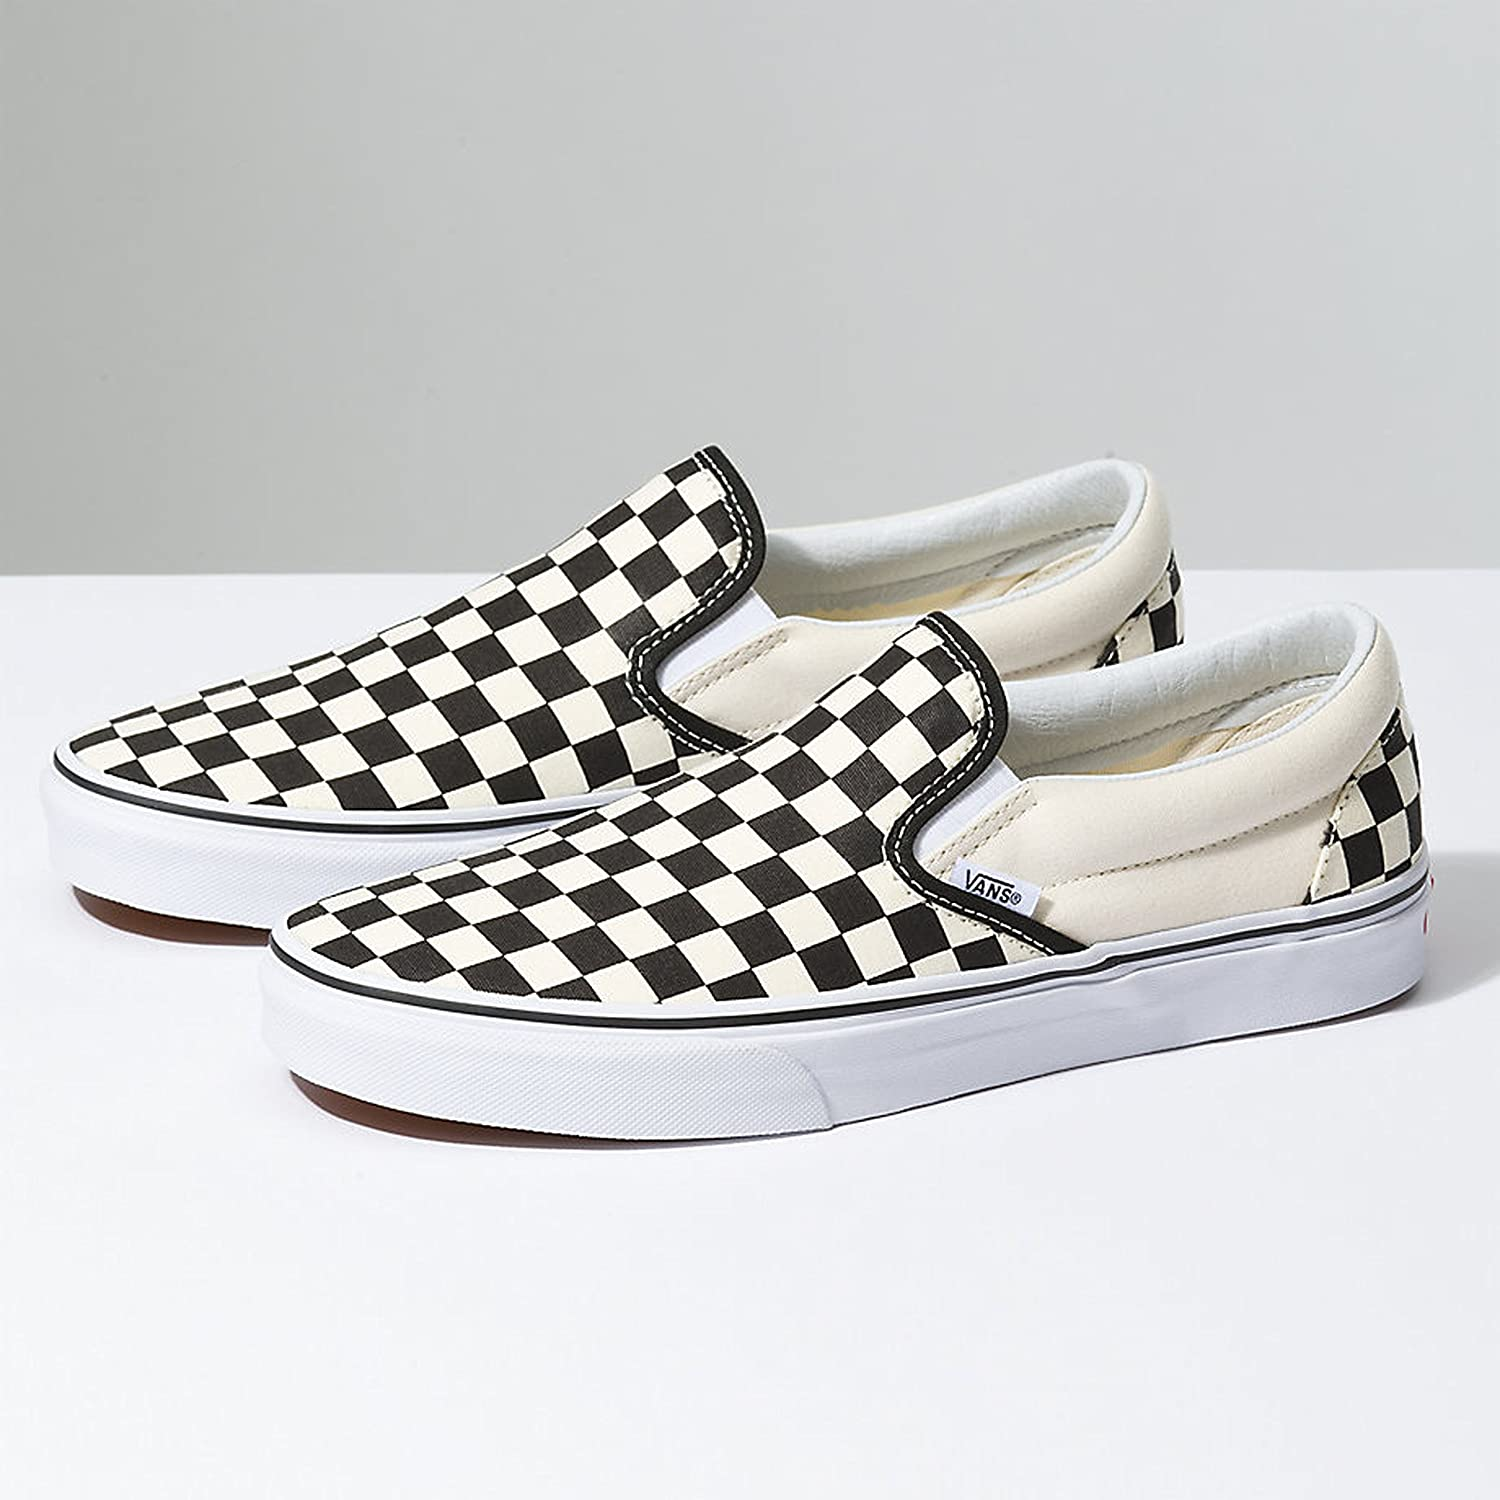 Men/Women Vans B077ZCB558 Unisex B077ZCB558 Vans Skateboarding fashion excellent General product ceddfc